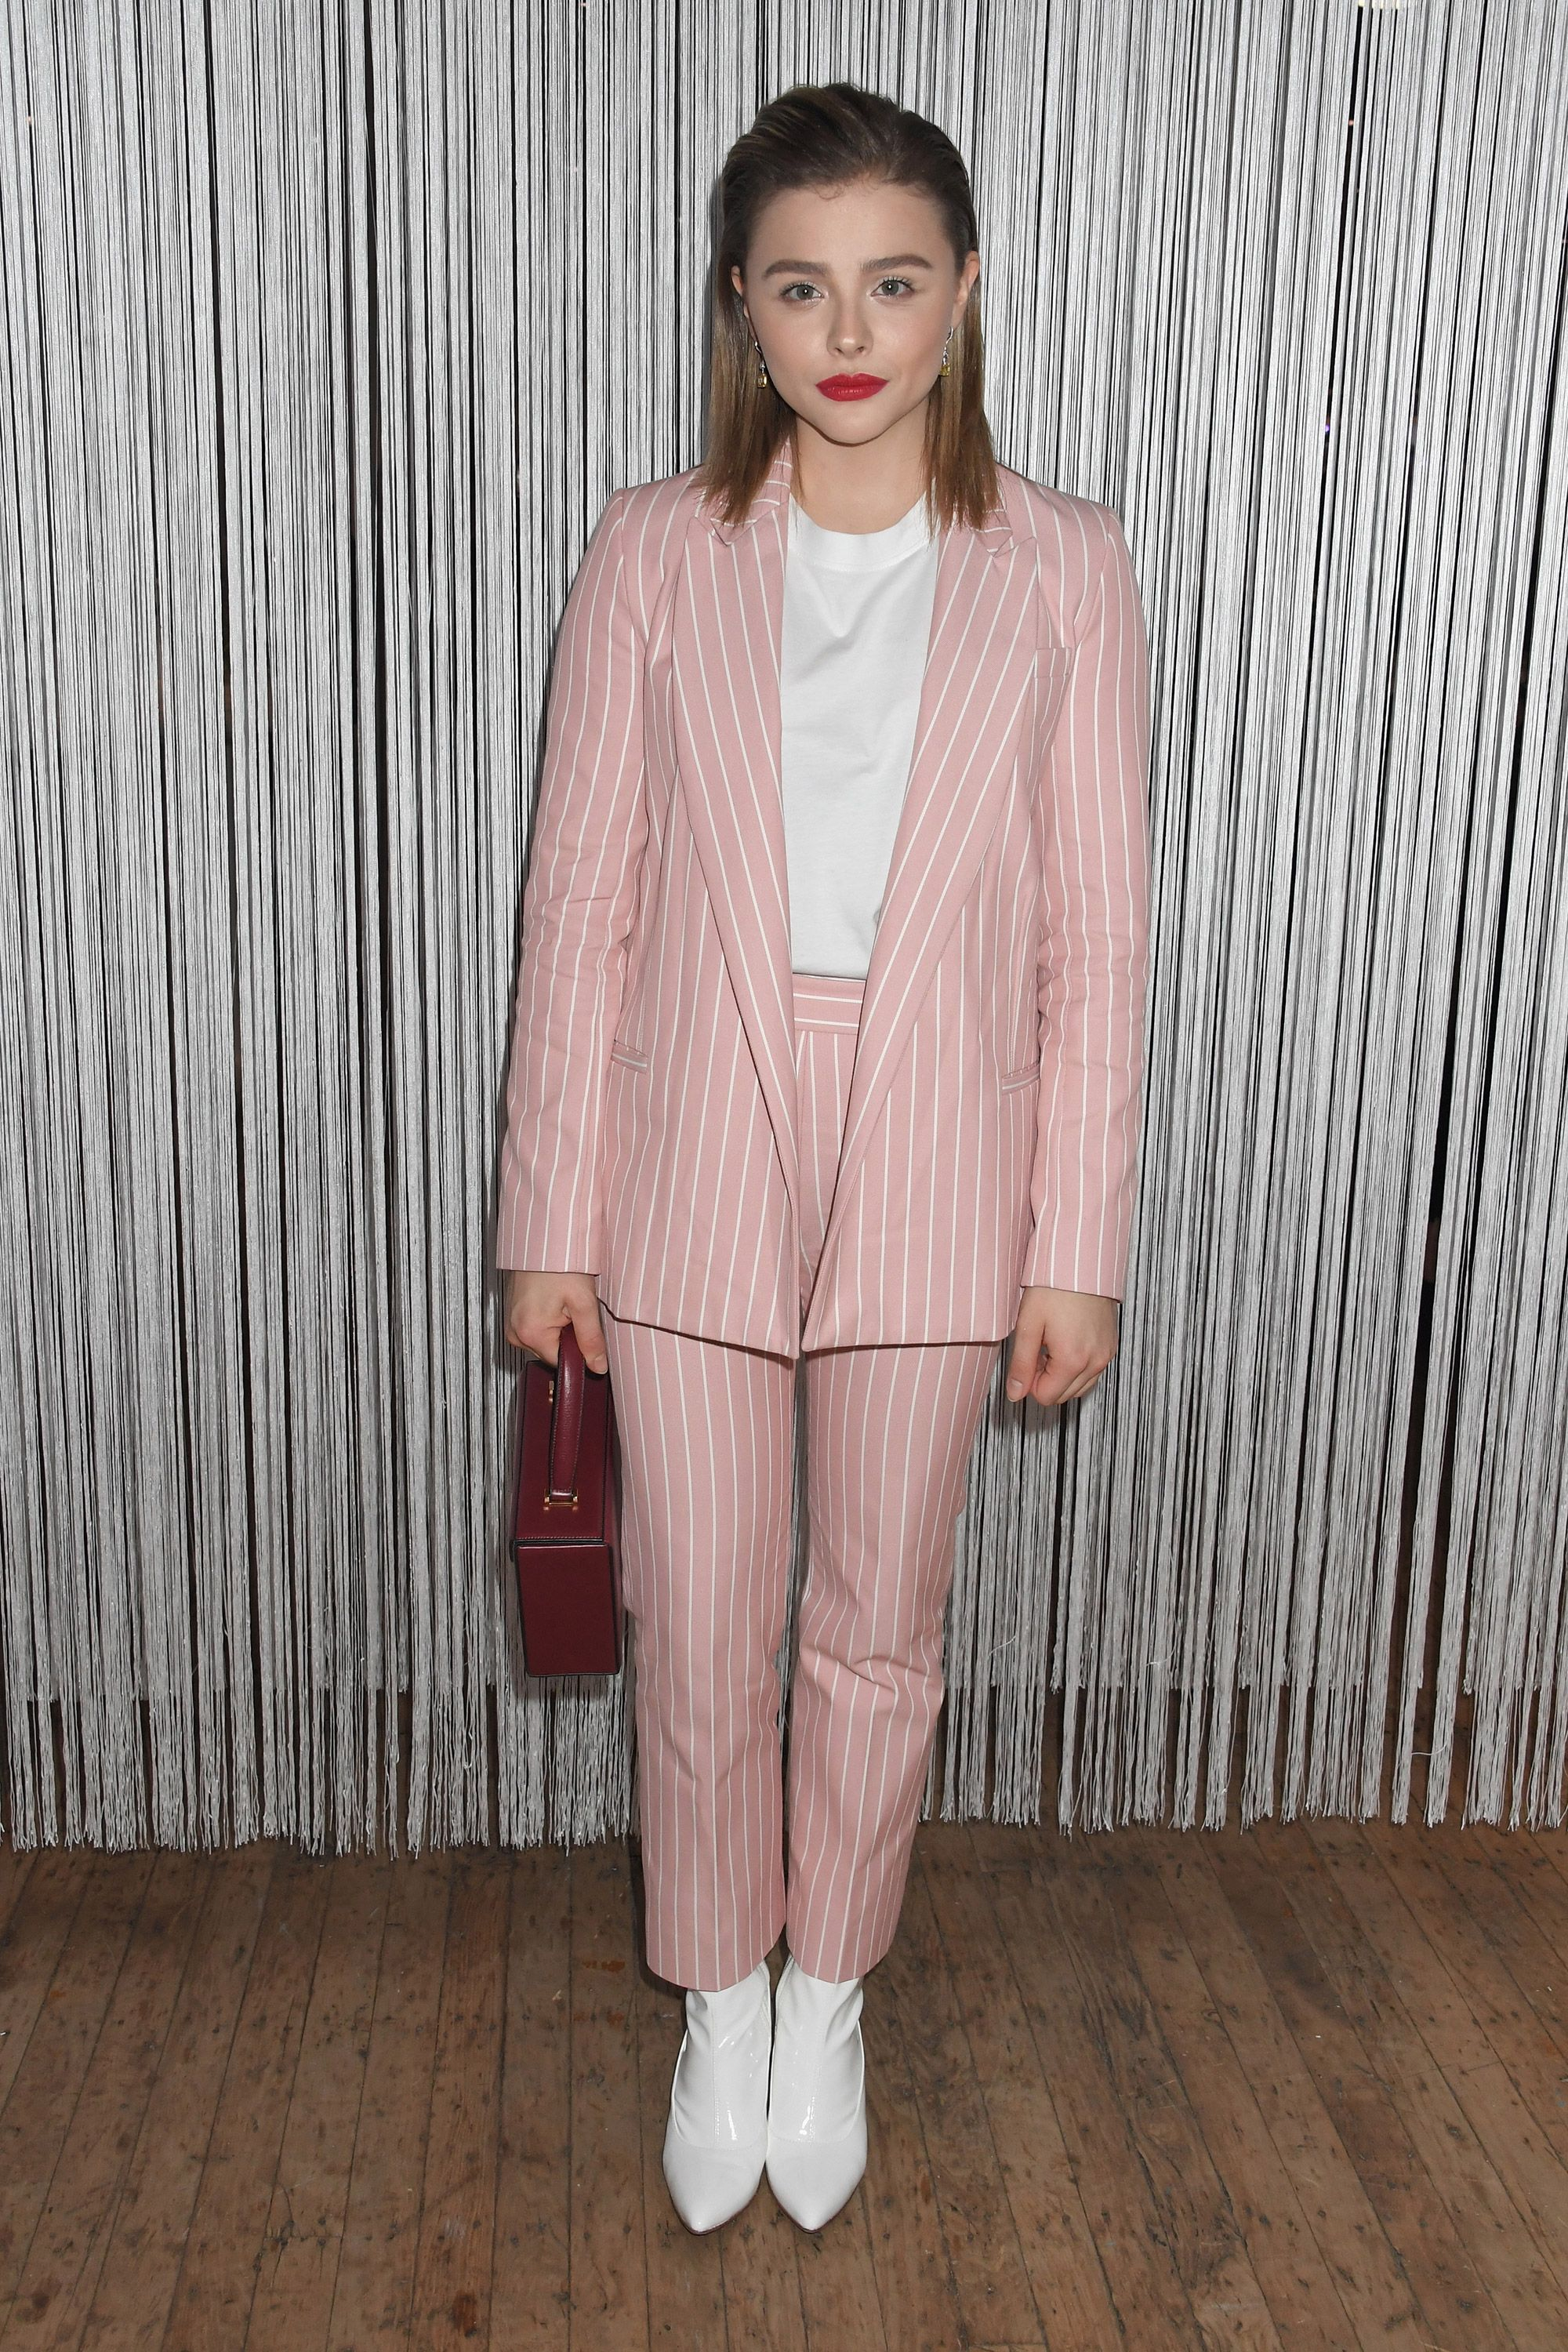 the subtle way chloë grace moretz's outfit shows she's trying to